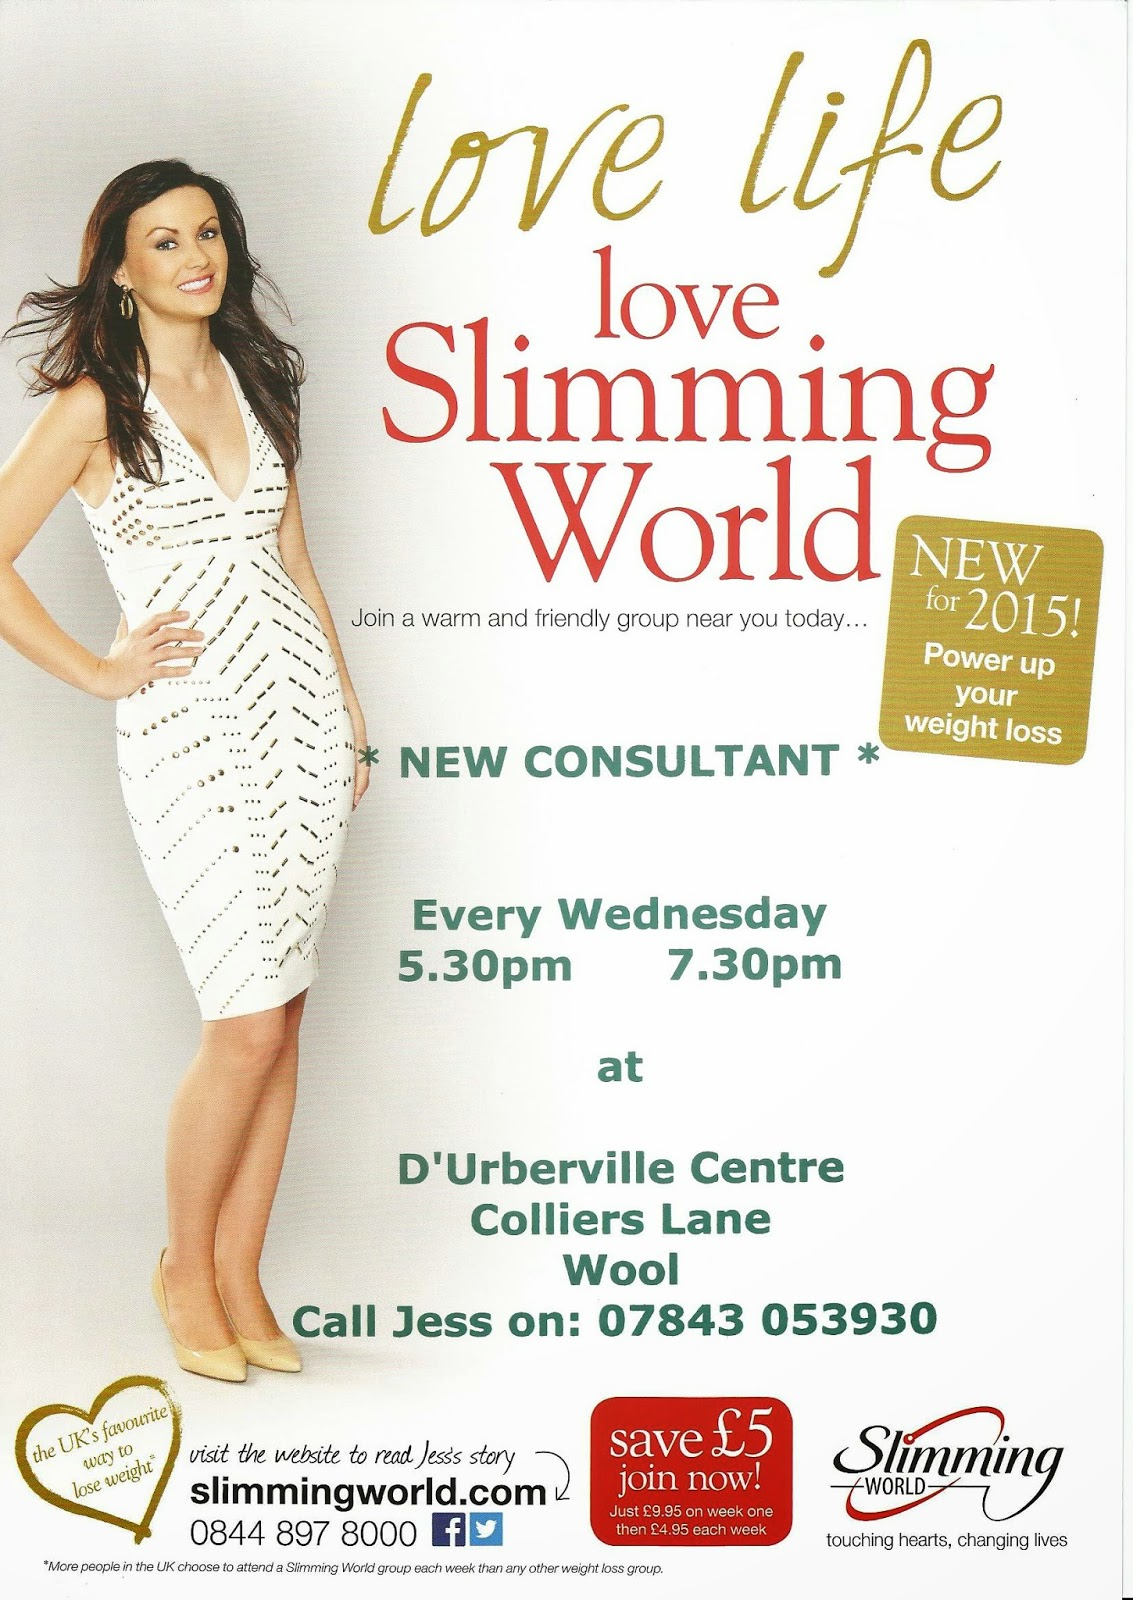 Bovington hive slimming world classes wool The slimming world